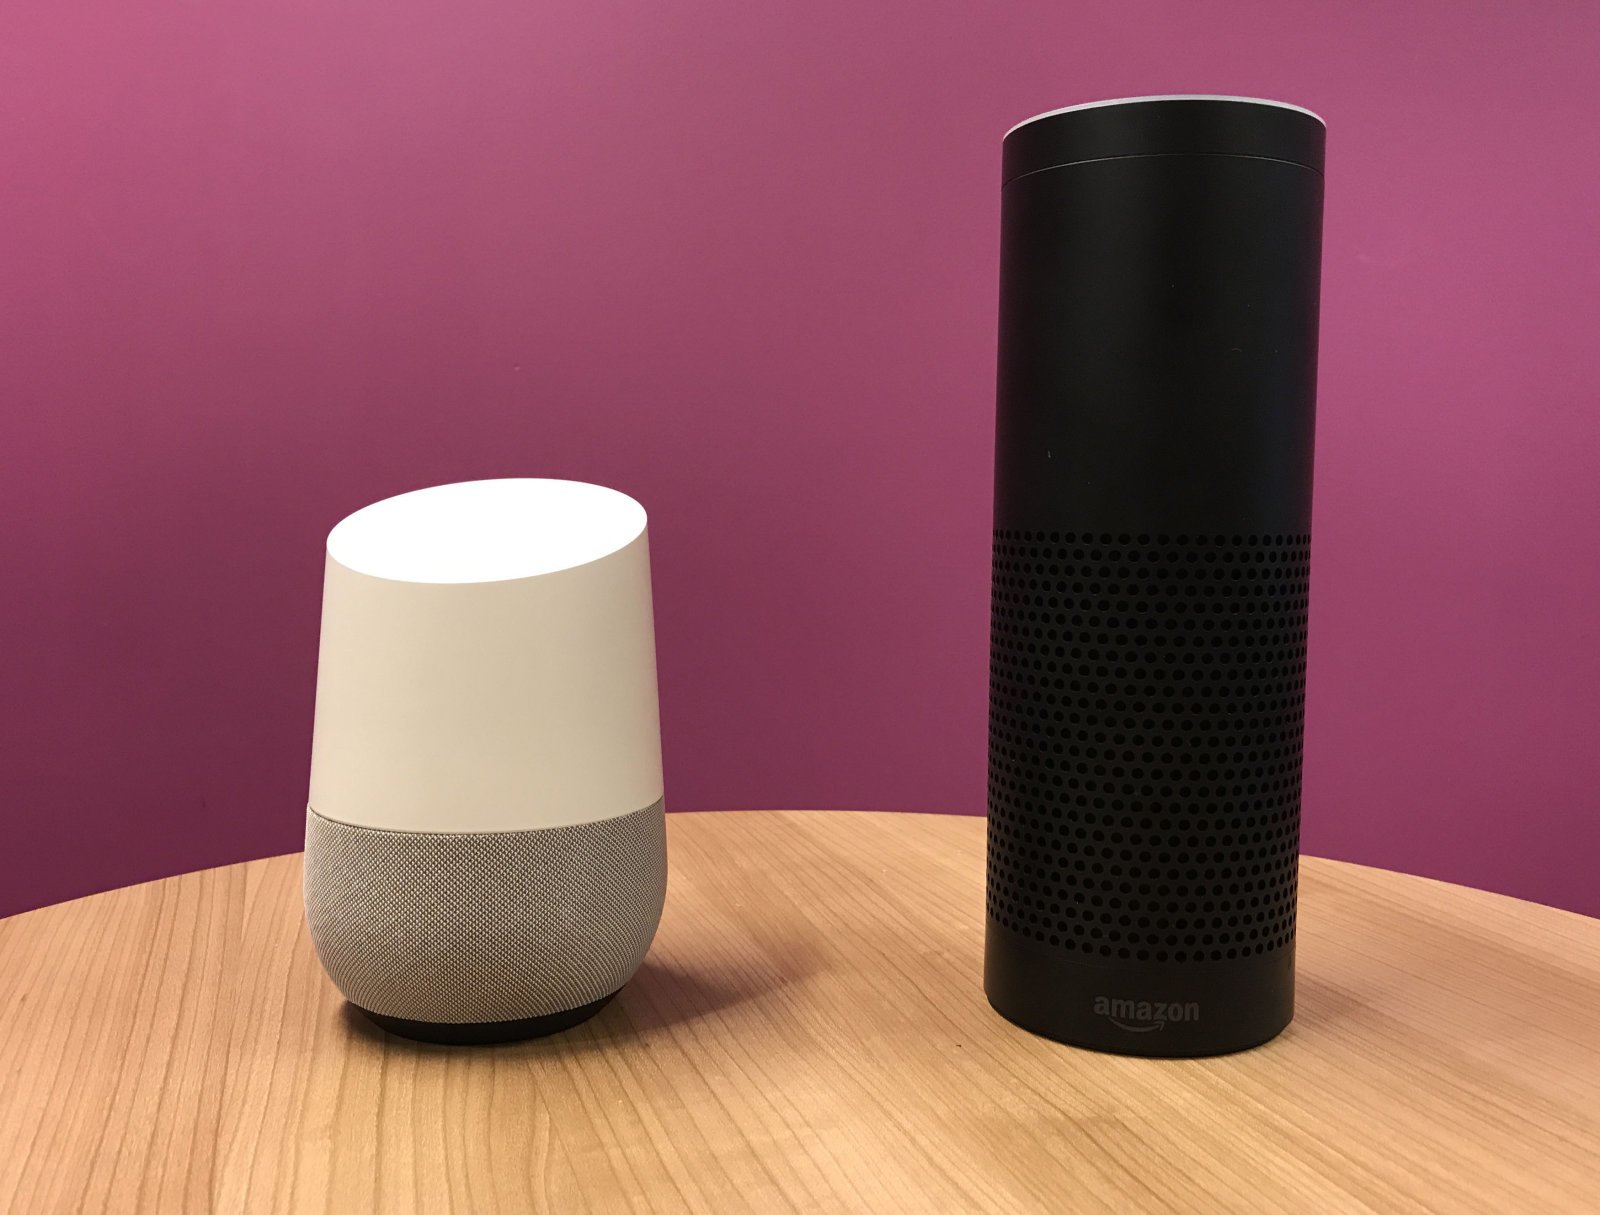 Embargoed to 0800 Wednesday October 25 File photo Google Home (left) and Amazon's Echo (right), as nearly a quarter of British households now contain a smart home product, according to new research.